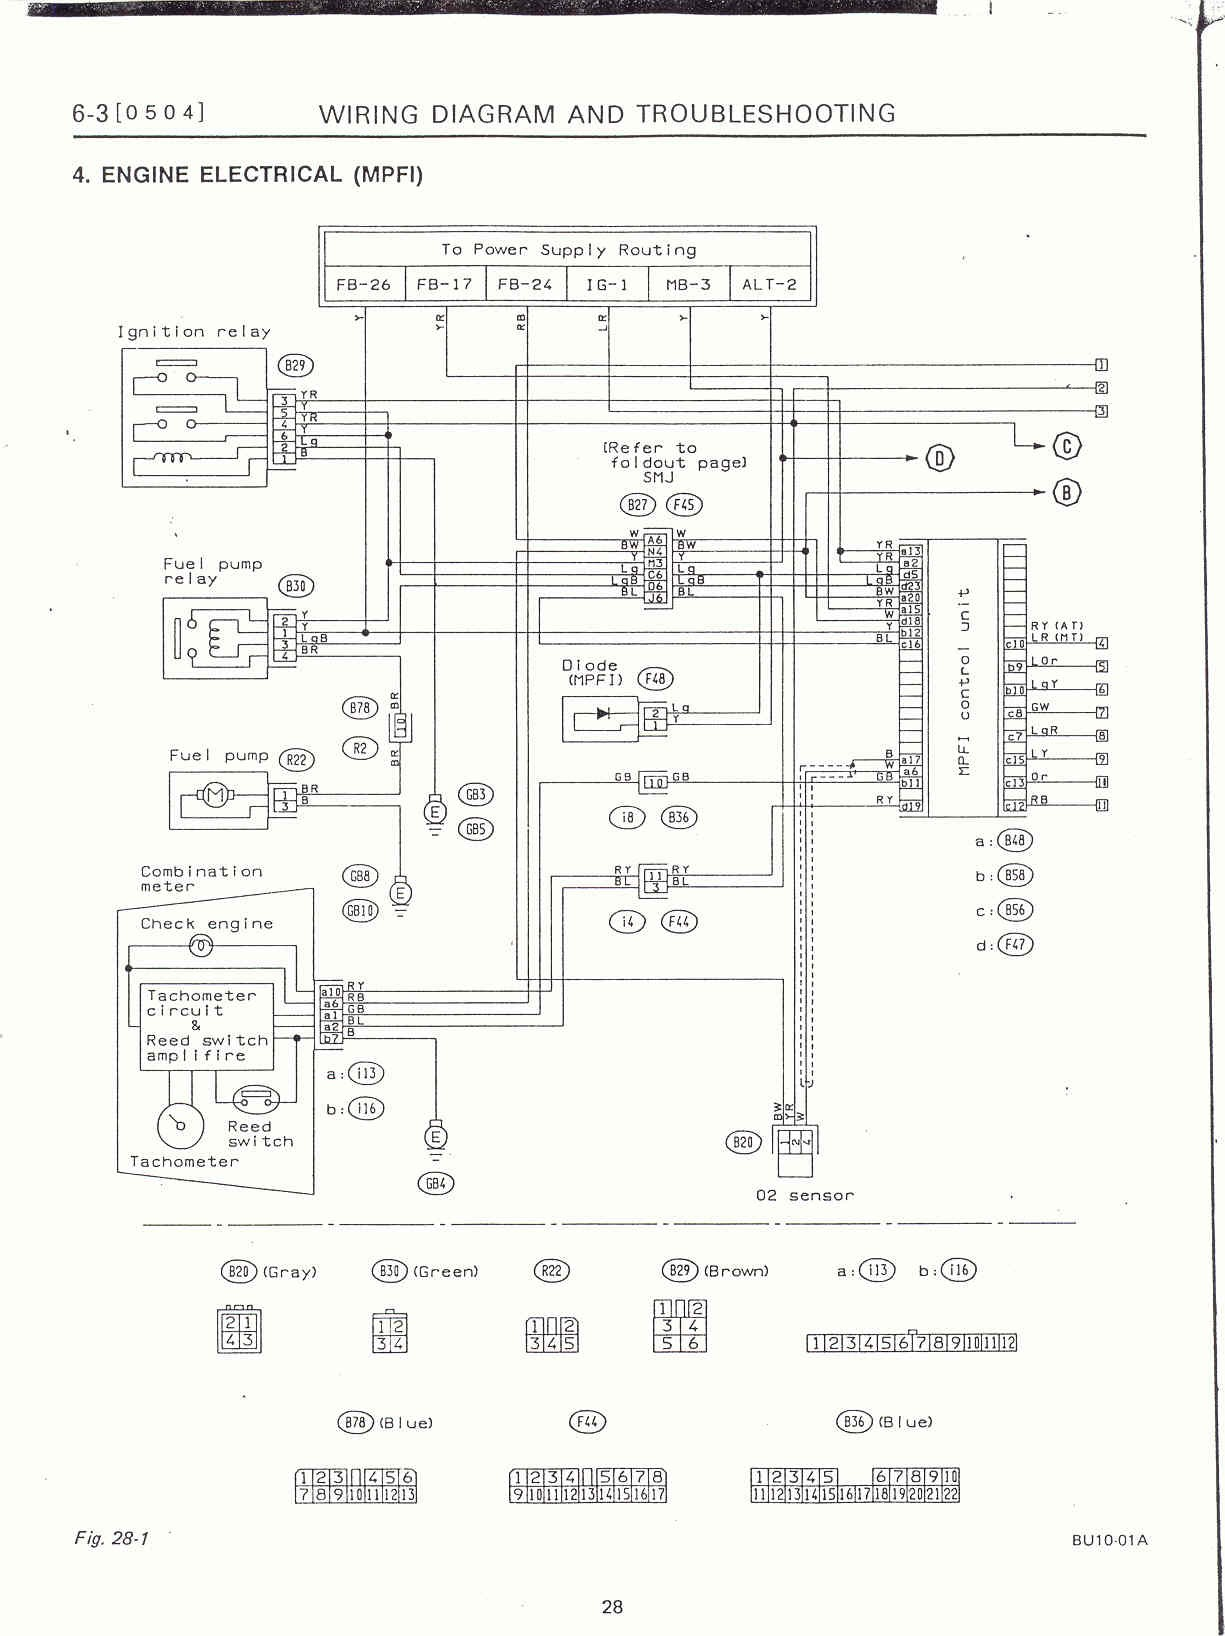 97 SUBARU LEGACY ENGINE DIAGRAM  Auto Electrical Wiring